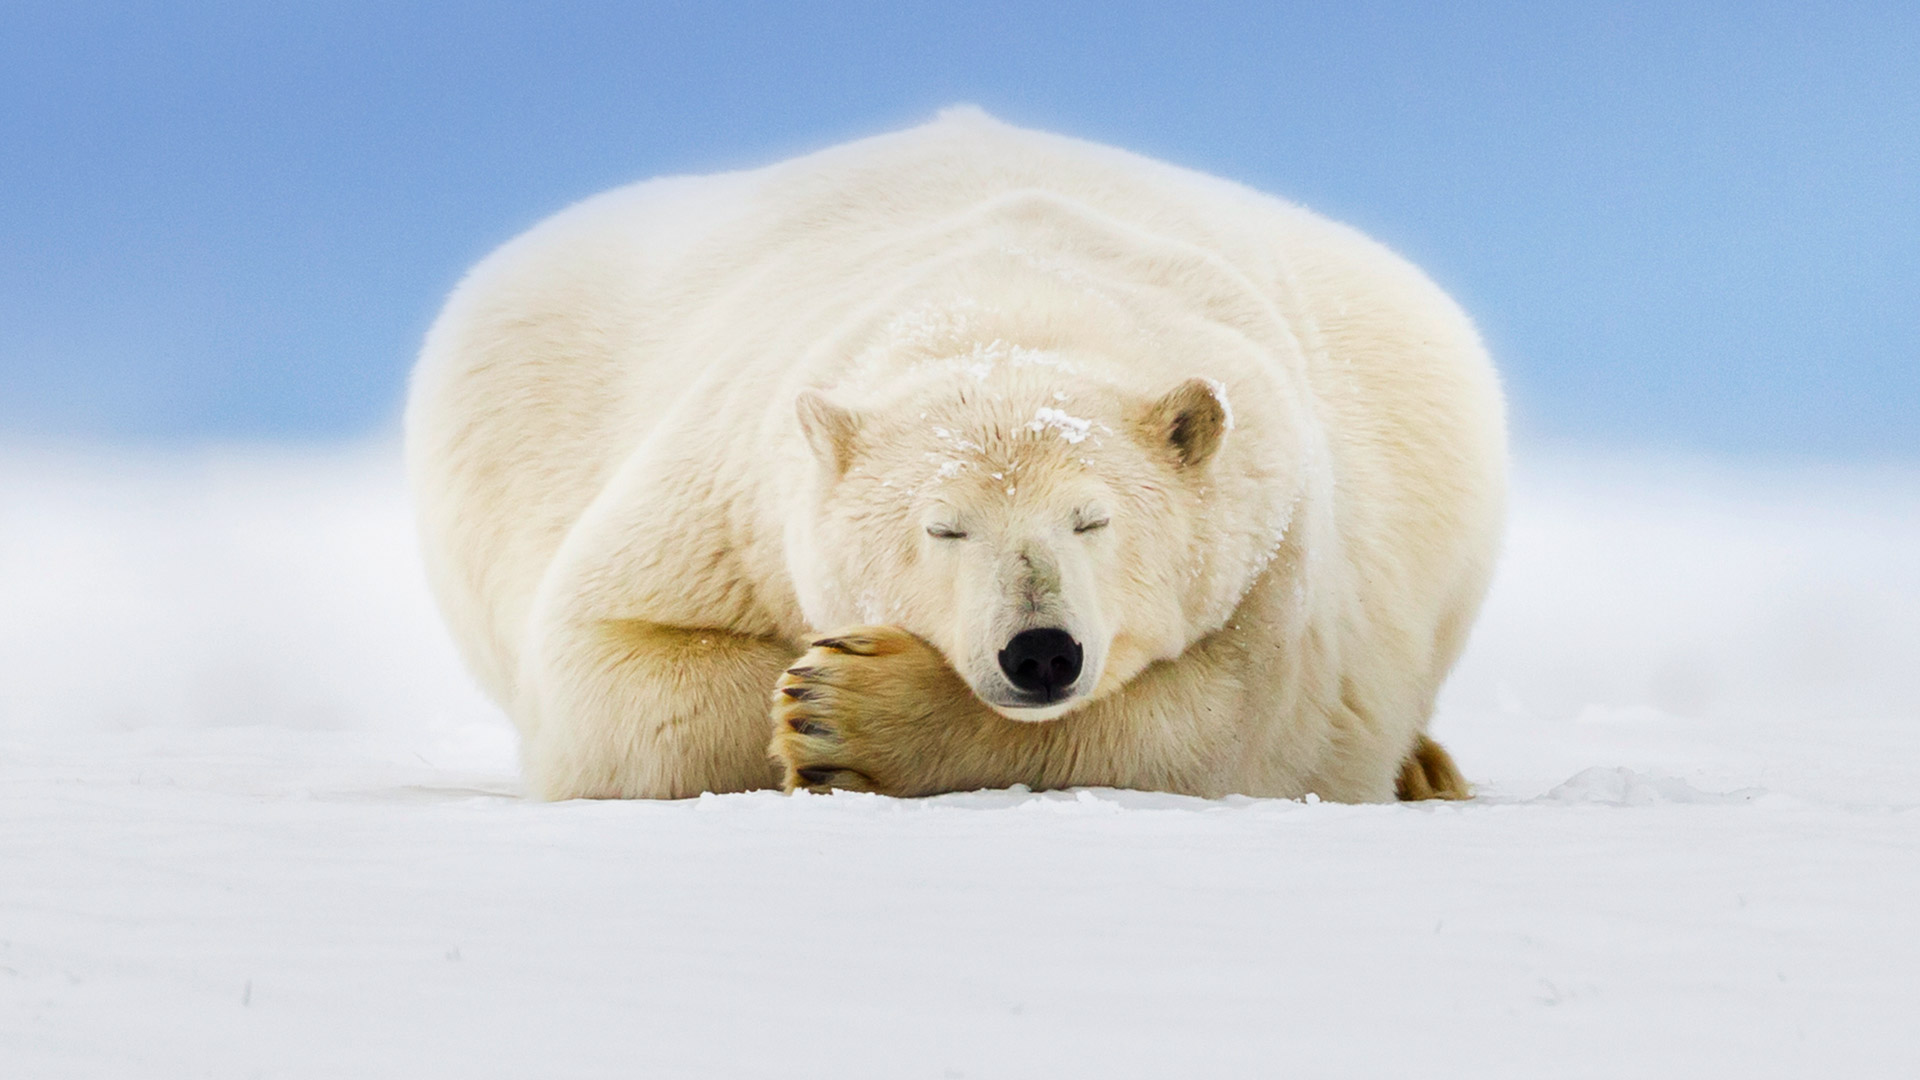 Polar bear on a barrier island in the Beaufort Sea, Arctic National Wildlife Refuge, Alaska (© Patrick Endres/plainpicture)